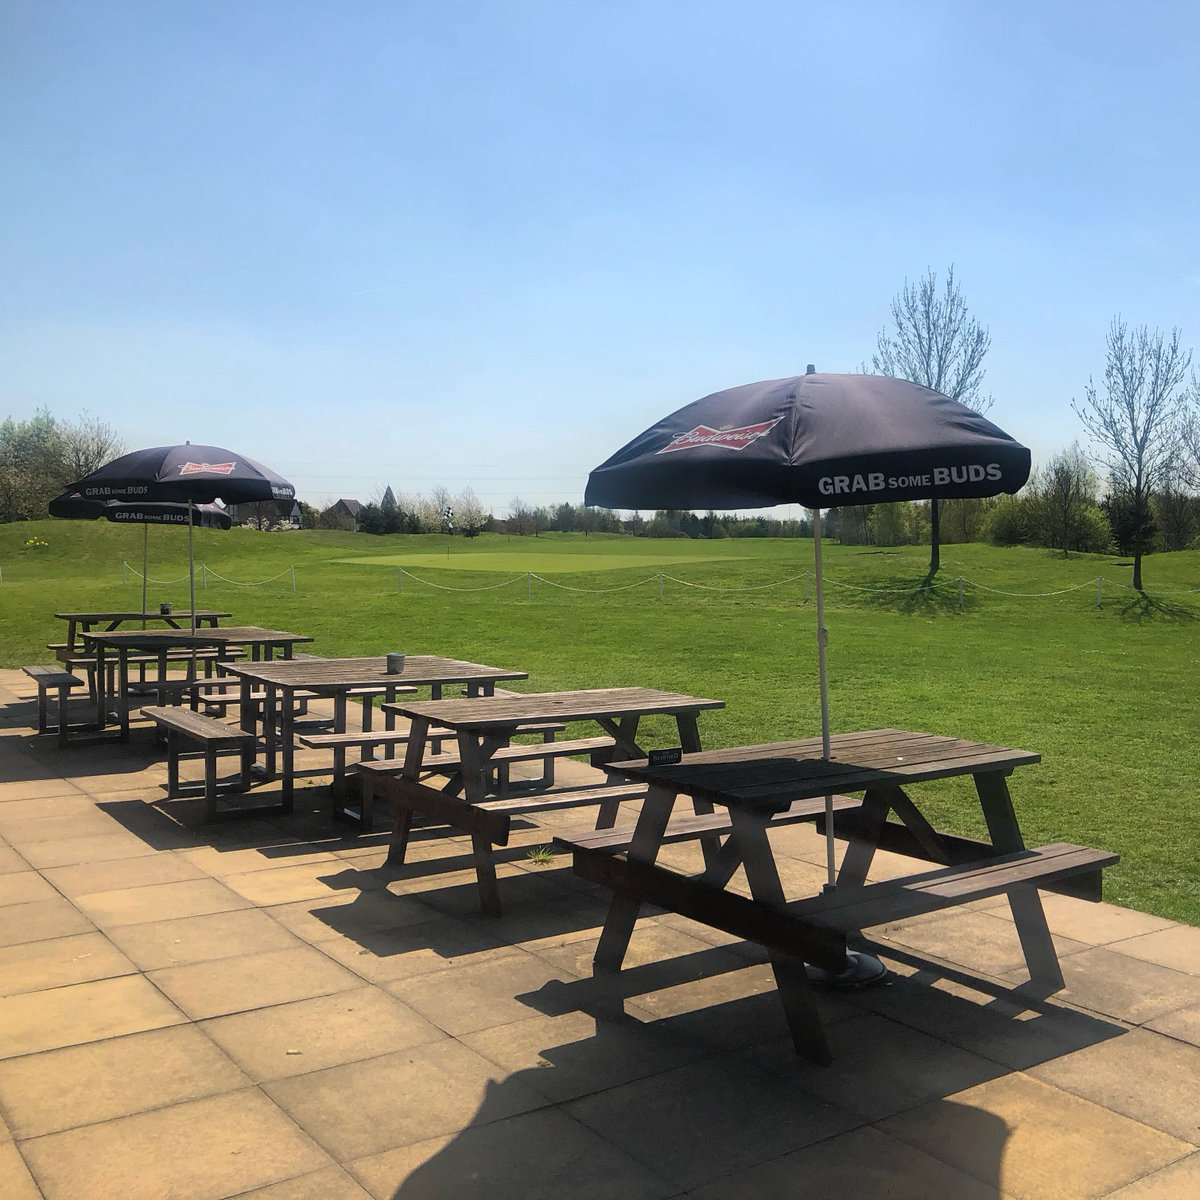 test Twitter Media - The sun is shining, the umbreallas are out and people are smiling, Summer must be on it's way... Join us for a bite to eat or a drink in the sun! https://t.co/Wvxm4bOb9C